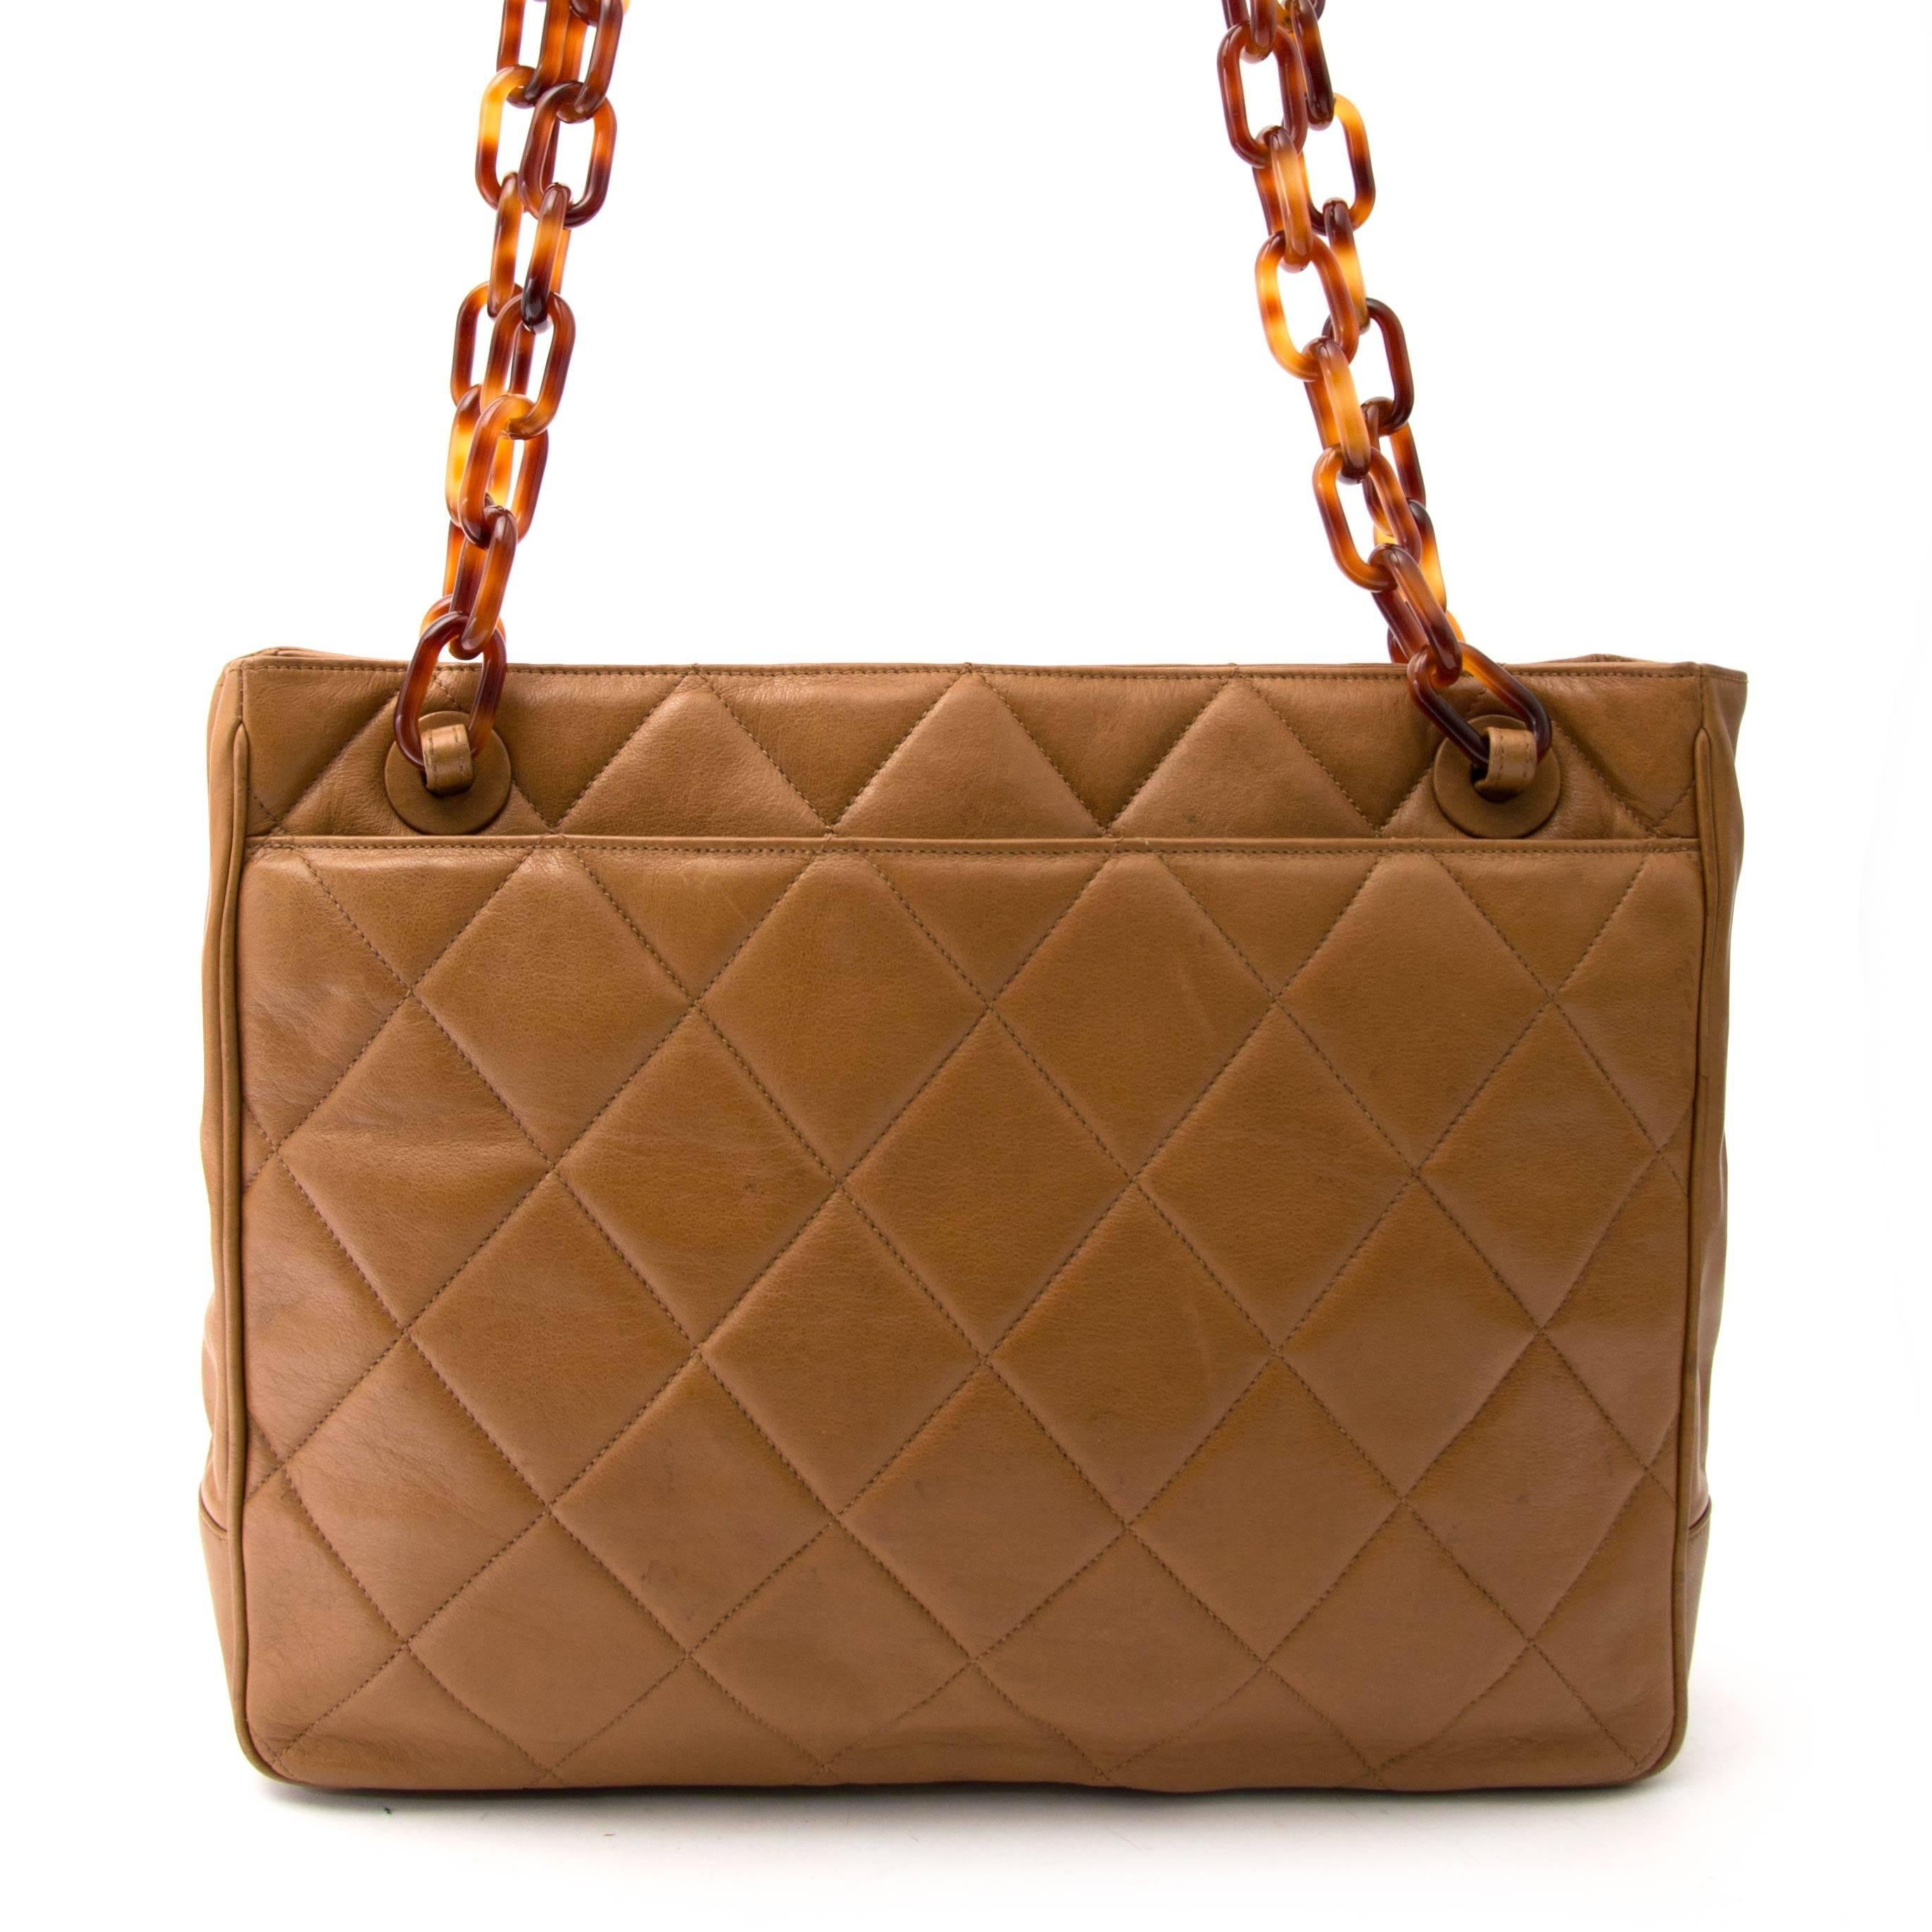 Chanel Biscuit Shopping Tote For Sale at 1stdibs 11e97fd1ed